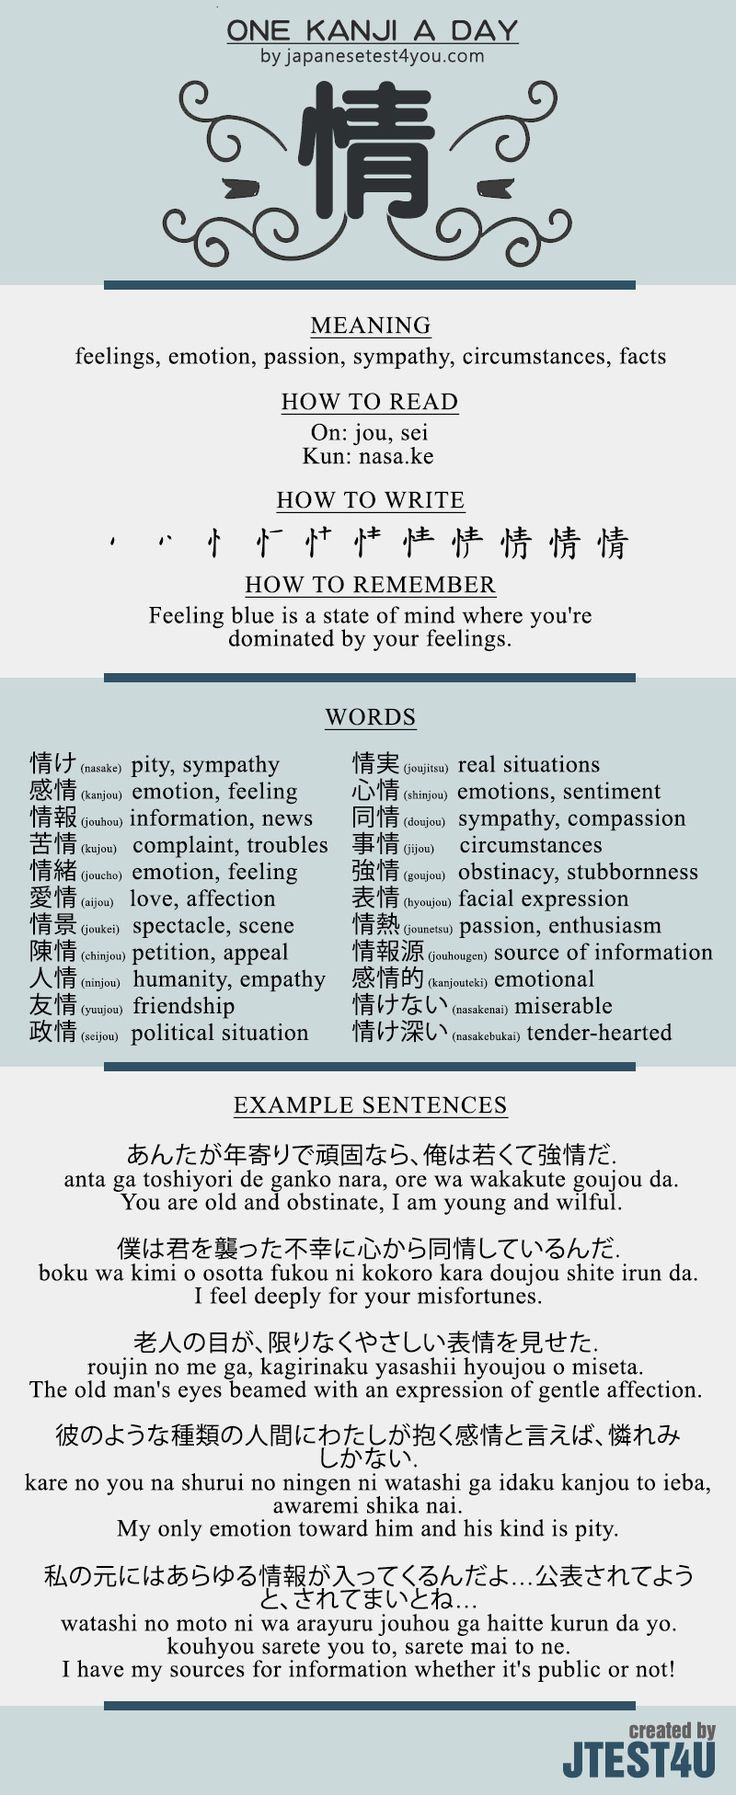 Learn one Kanji a day with infographic - 情 (jou): http://japanesetest4you.com/learn-one-kanji-a-day-with-infographic-%e6%83%85-jou/